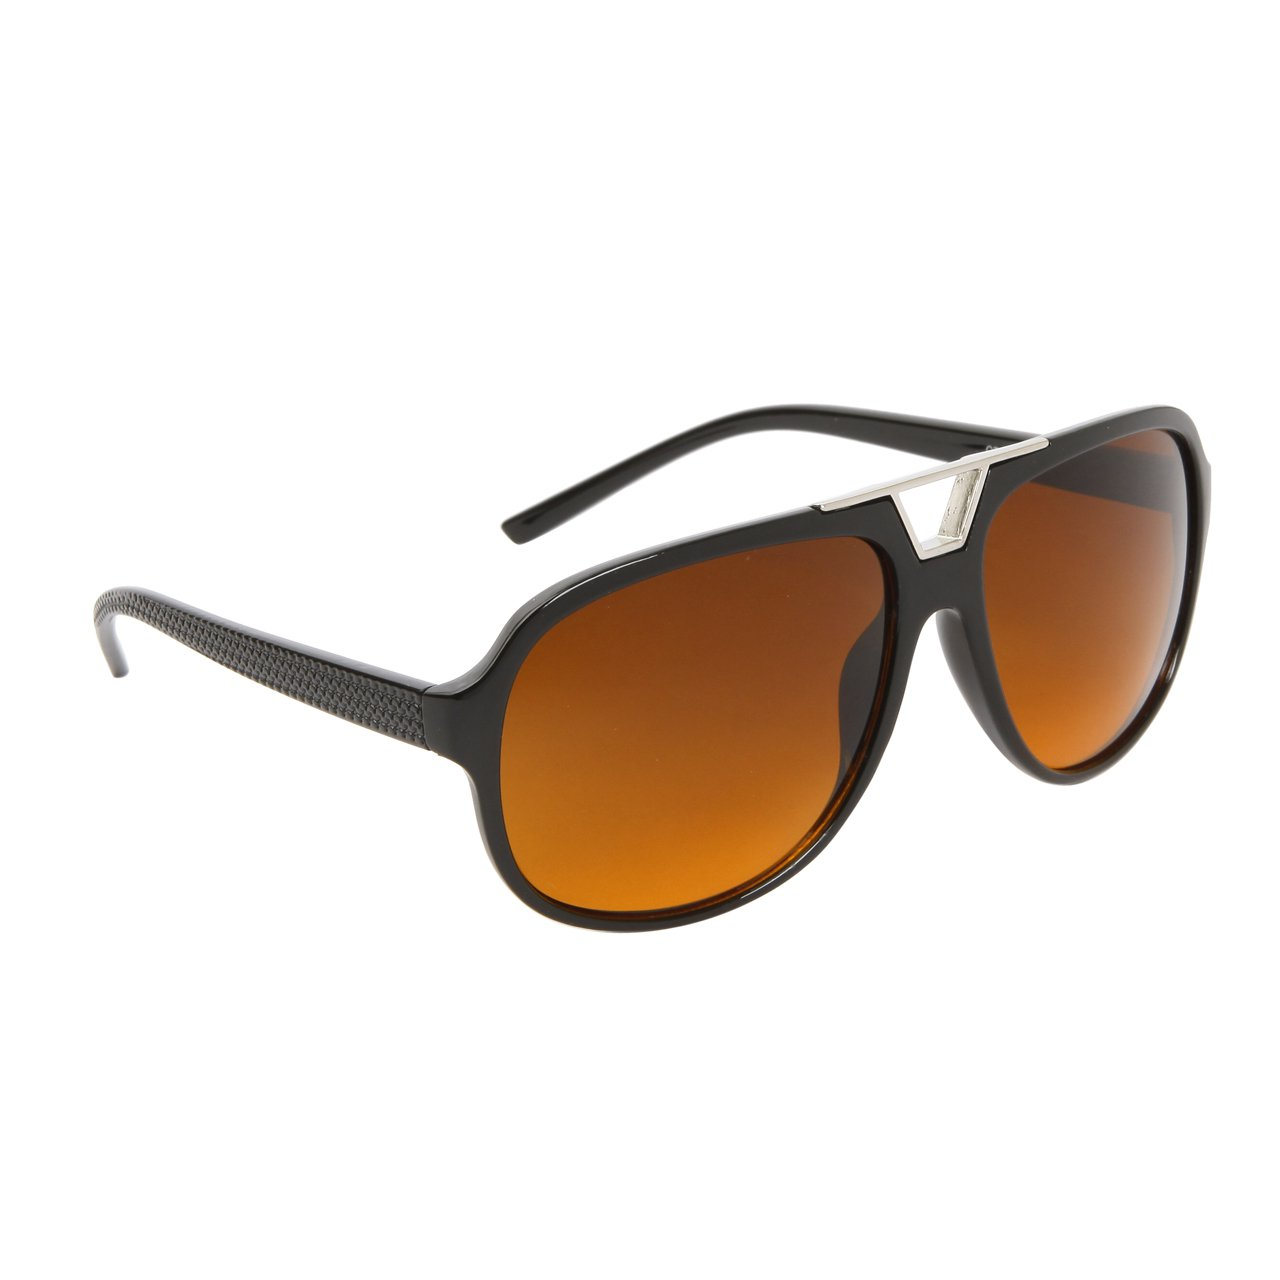 MEN'S DESIGNER INSPIRED BLUE BLOCKER AVIATOR SUNGLASSES